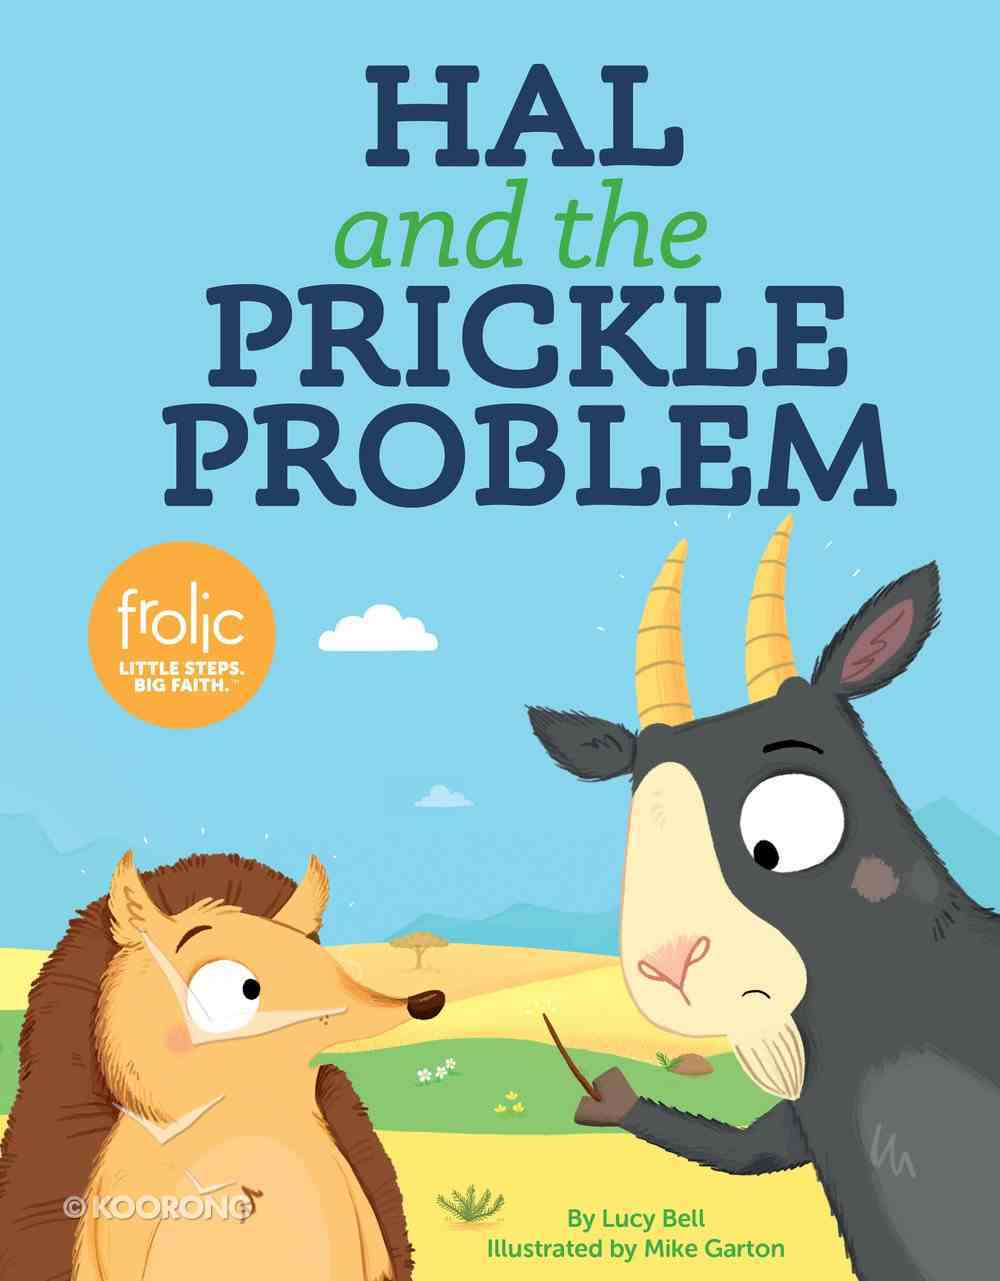 Hal and the Prickle Problem: A Book About Doing Your Part (Frolic Series) Hardback